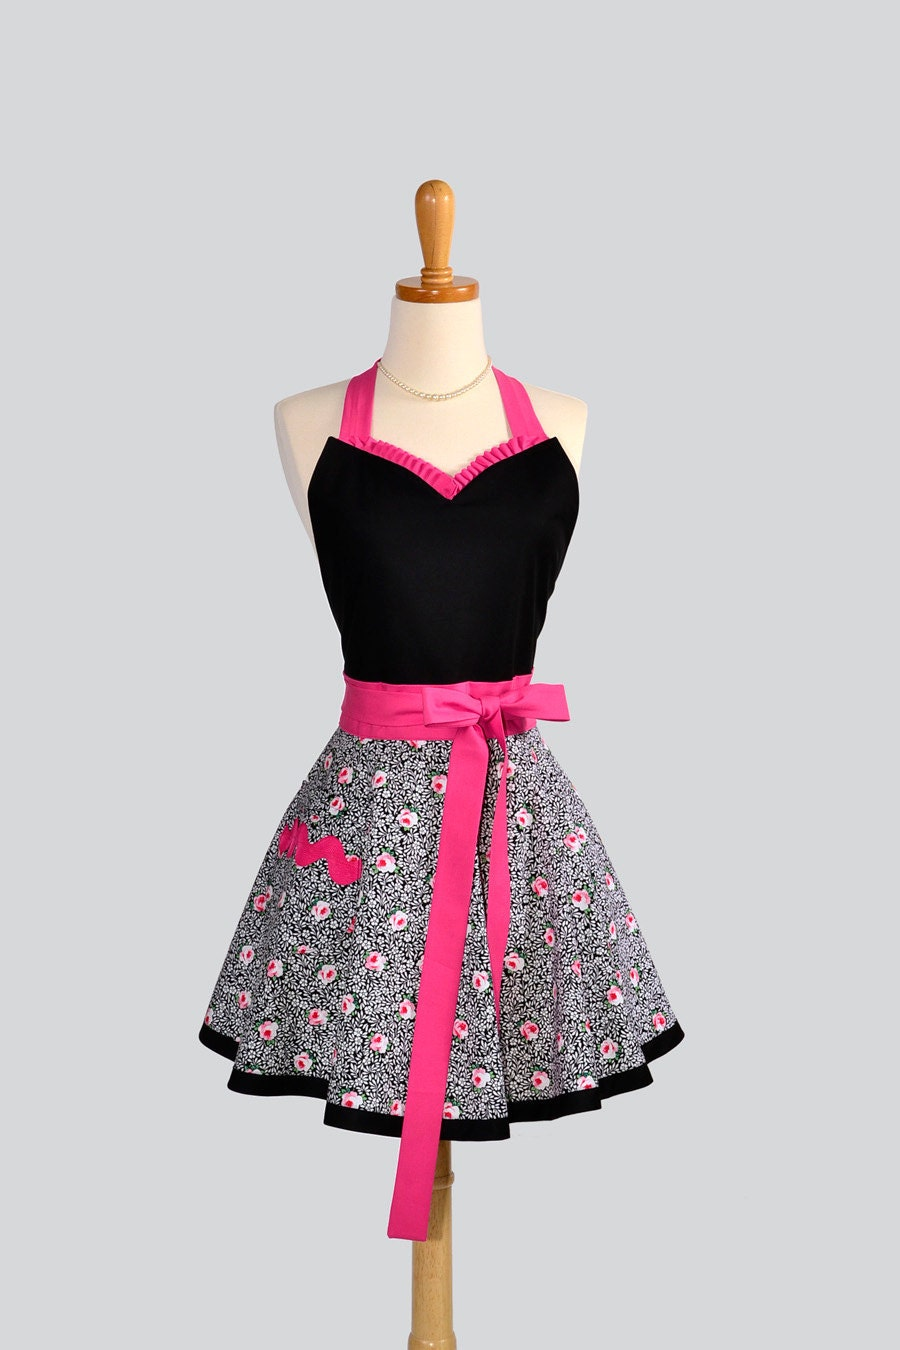 Sweetheart retro apron sexy womens apron is a cute handmade for Apron designs and kitchen apron styles